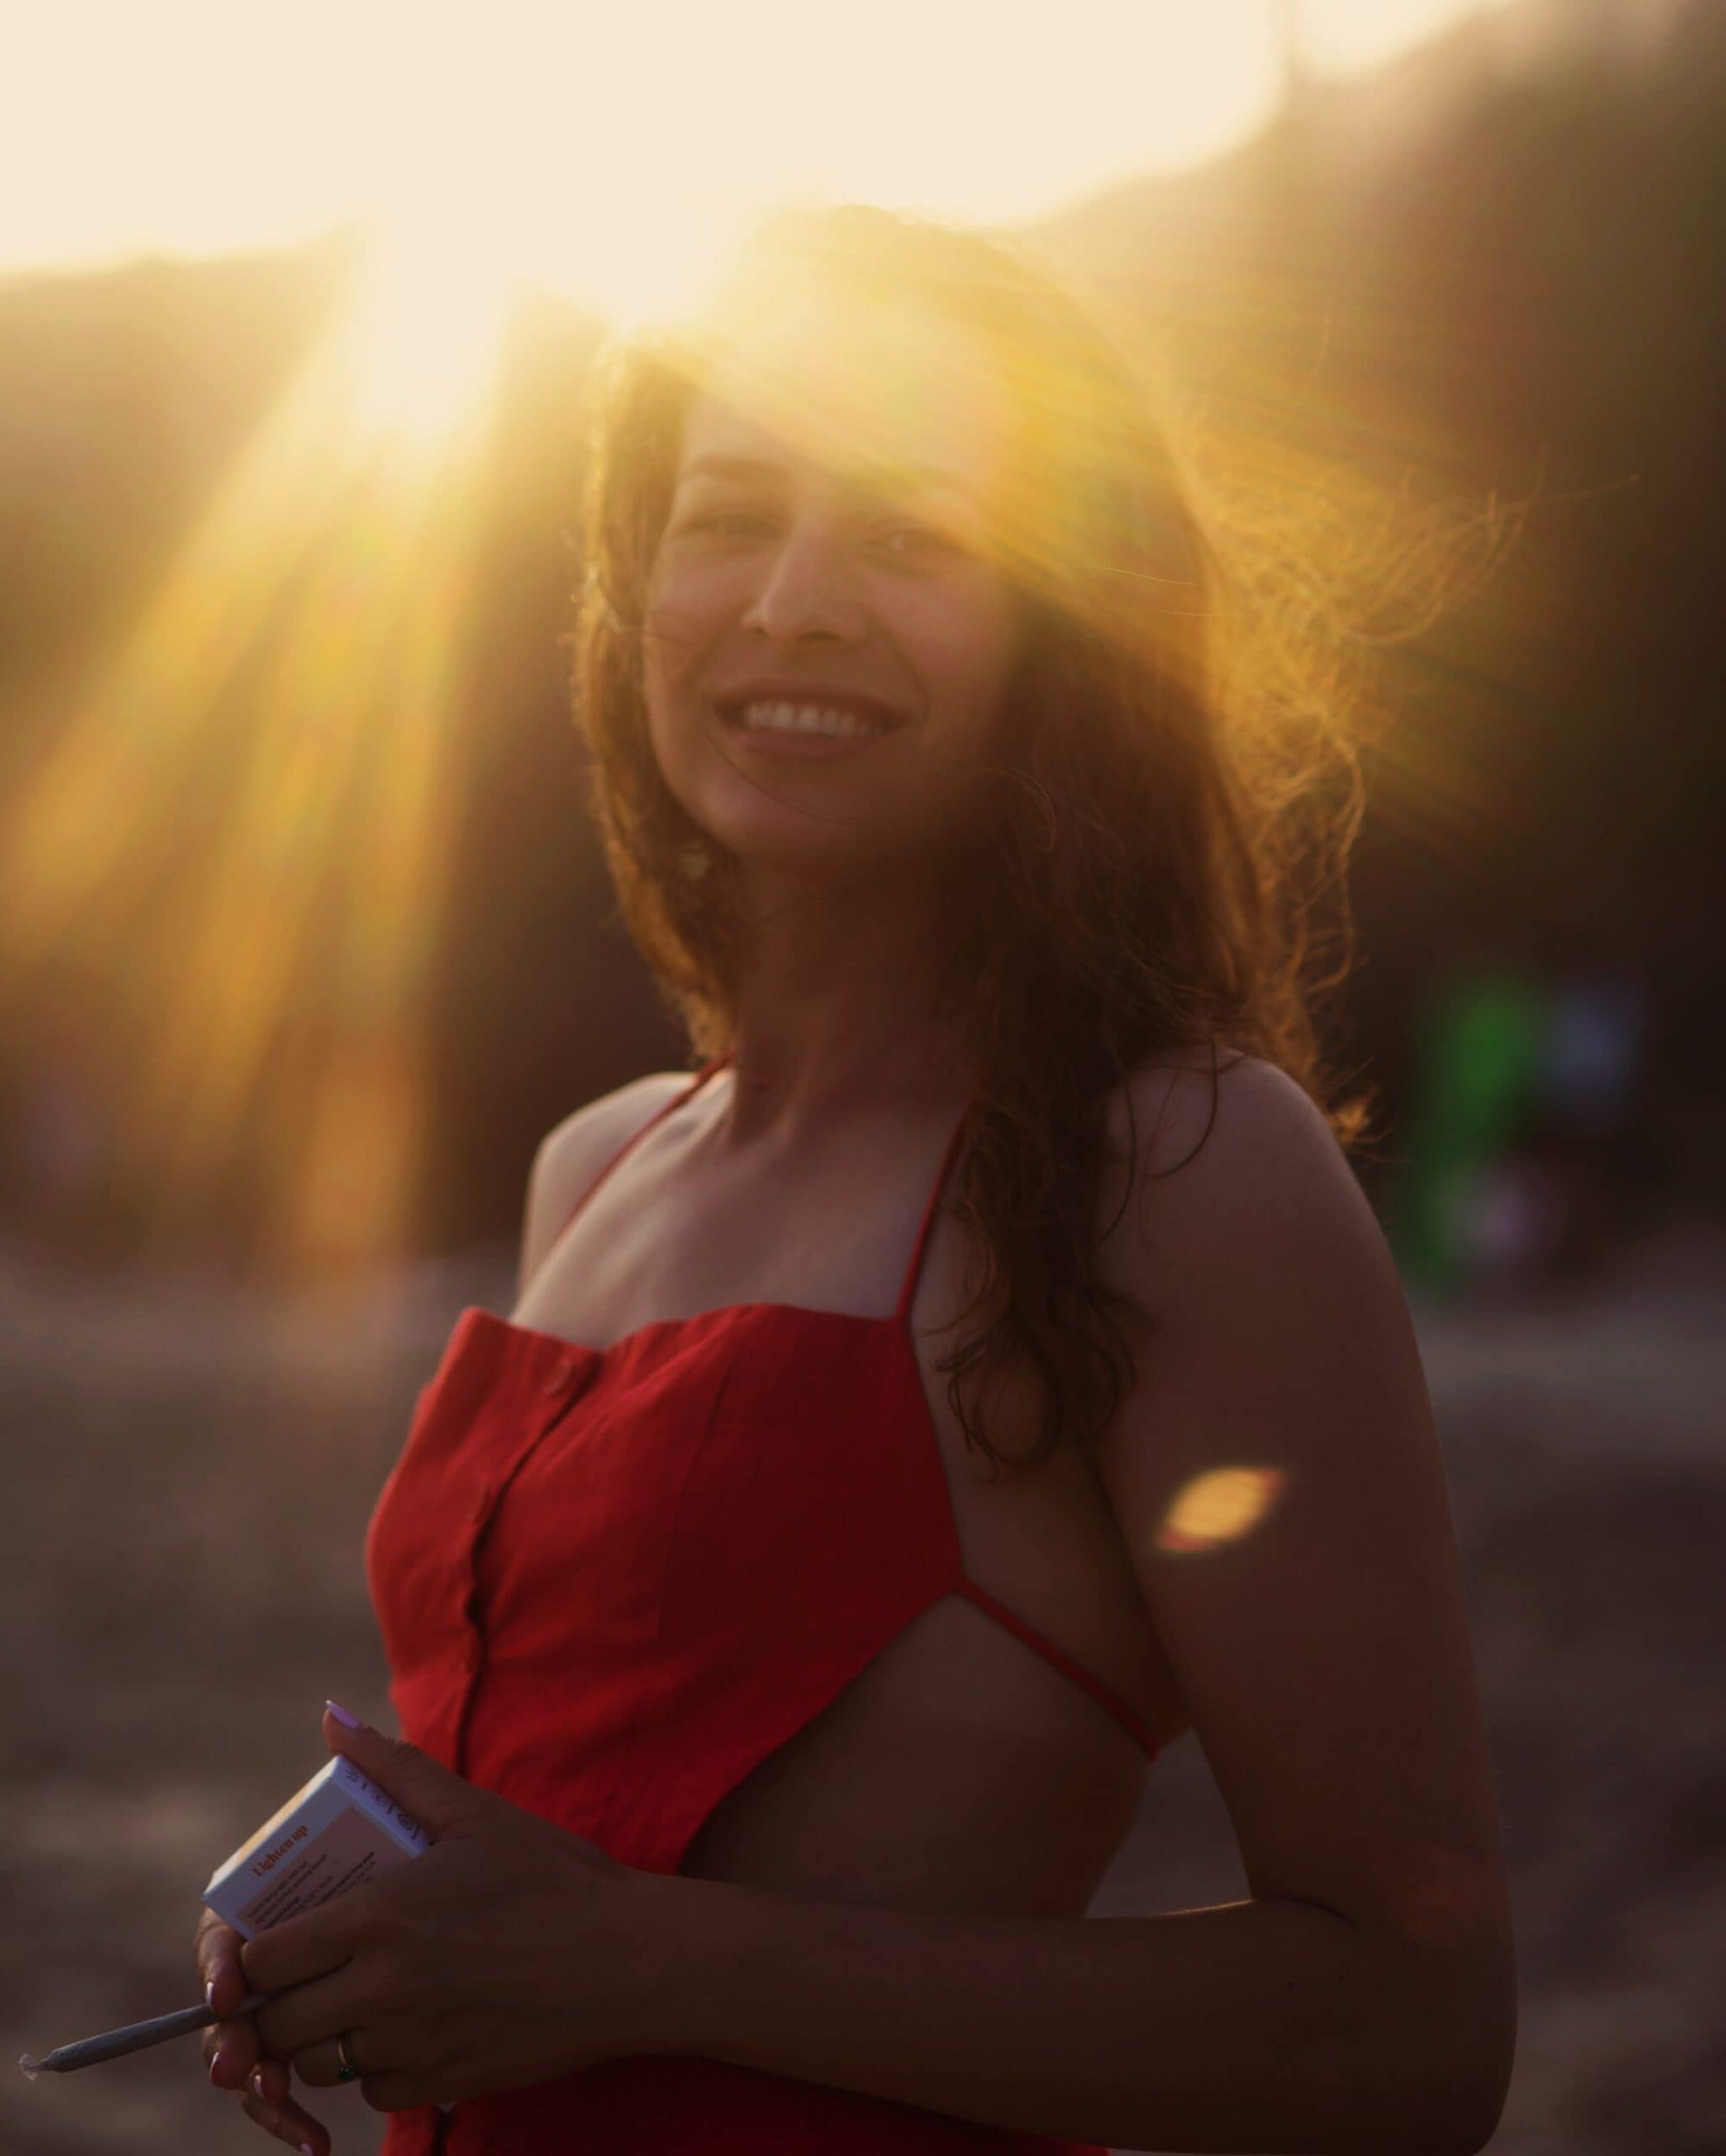 Image of Lian Bruno, a young white woman with wavy brown hair, smiling and wearing a red dress with the sun behind her.